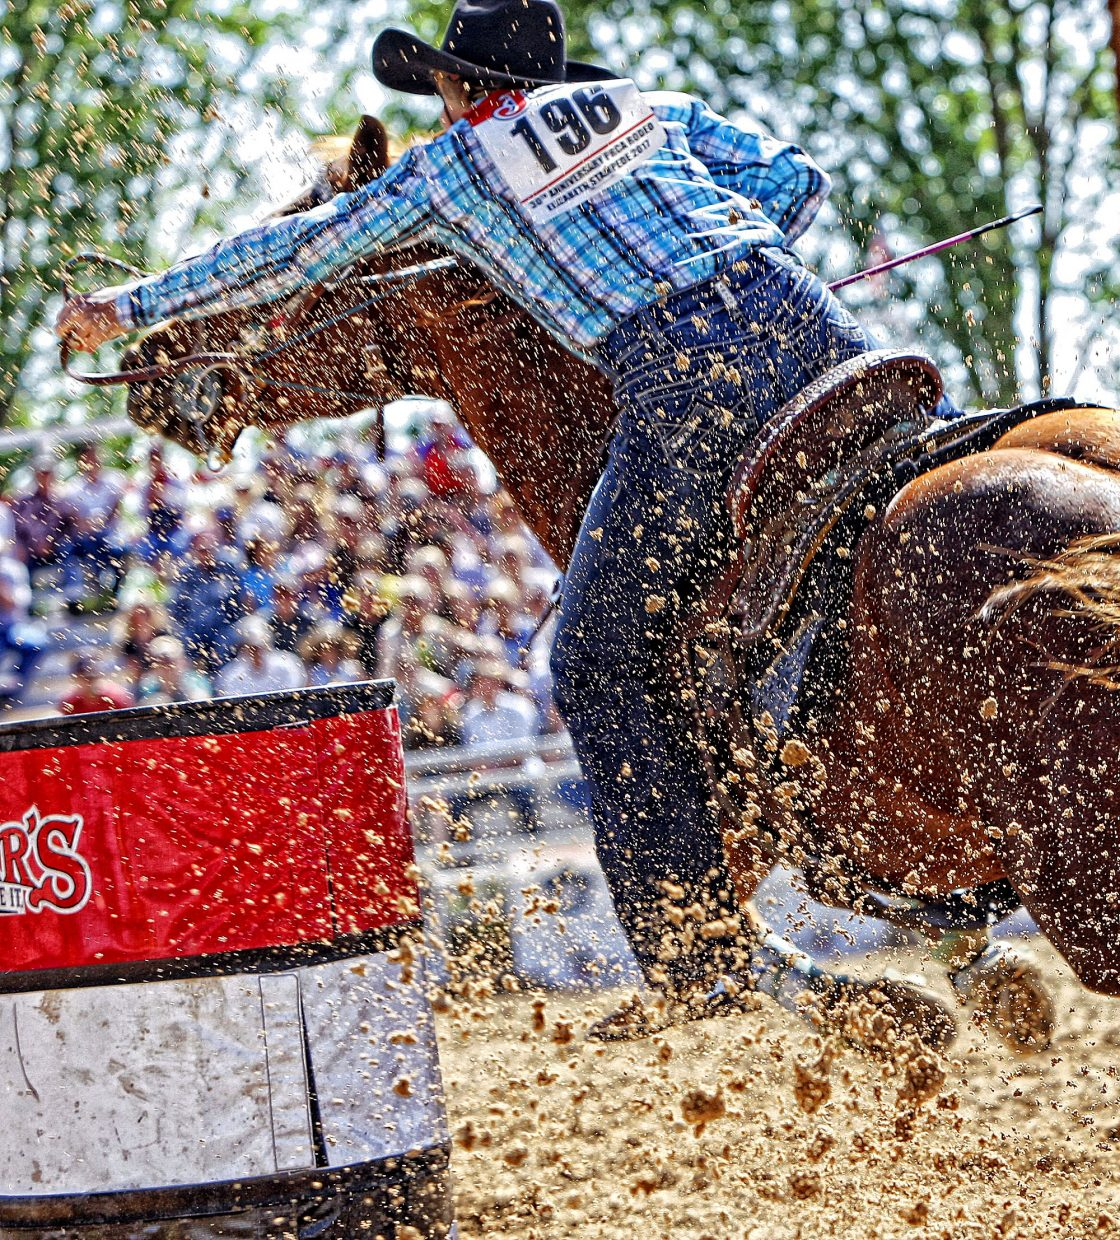 The barrel racing action at the Elizabeth Stampede Rodeo in Elizabeth, Colo., is always fast and furious, with 2017 being no different.